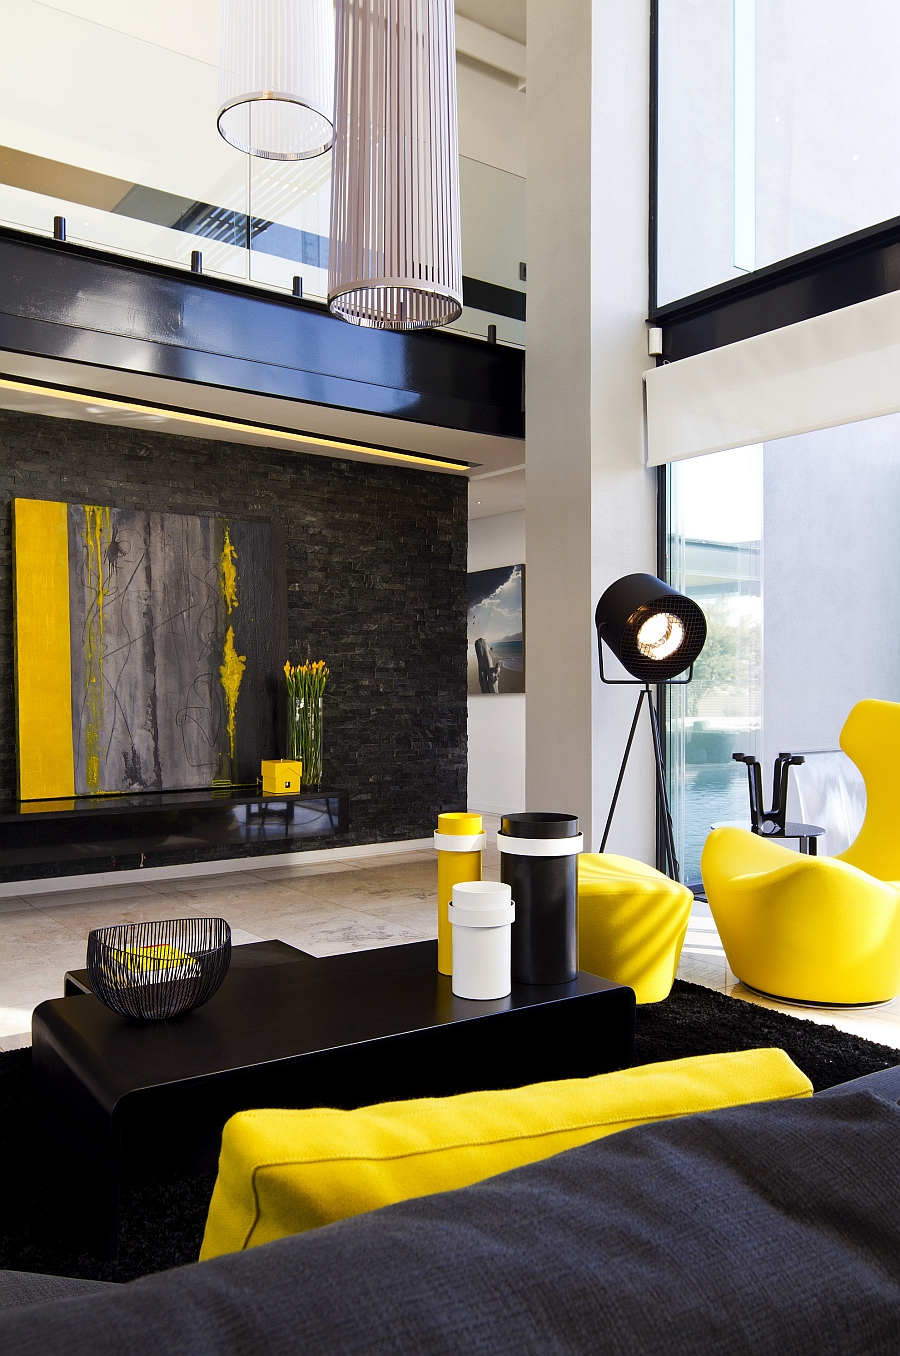 ae3a2__Bright-yellow-accents-enliven-the-contemporary-living-room-with-dark-hues